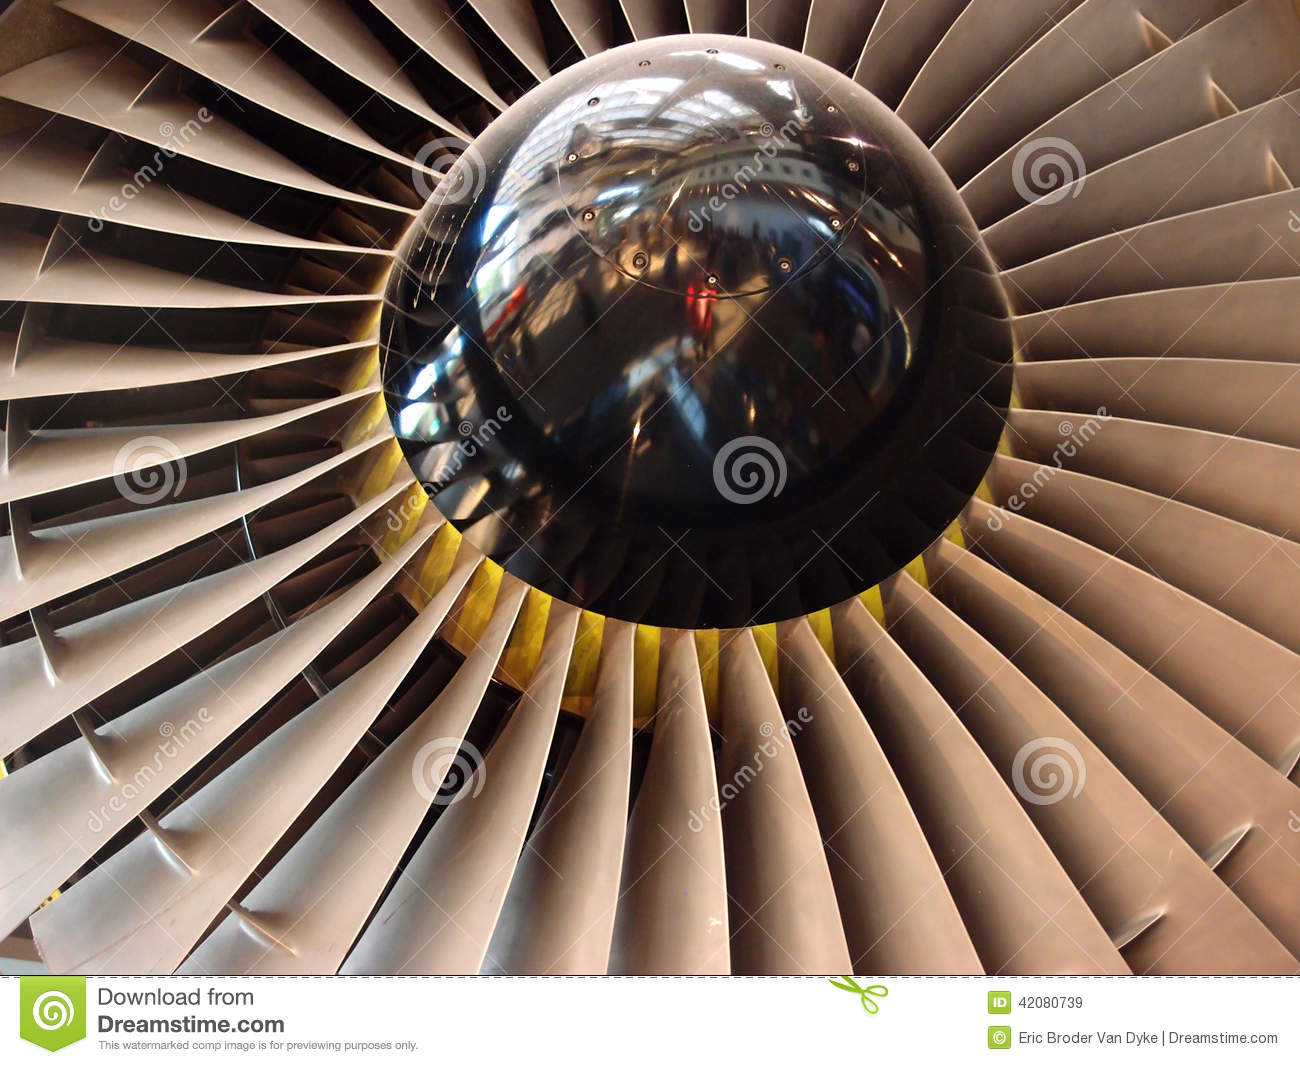 Jet Engine Fan Blades : Jet engine fan blades close up stock photo image